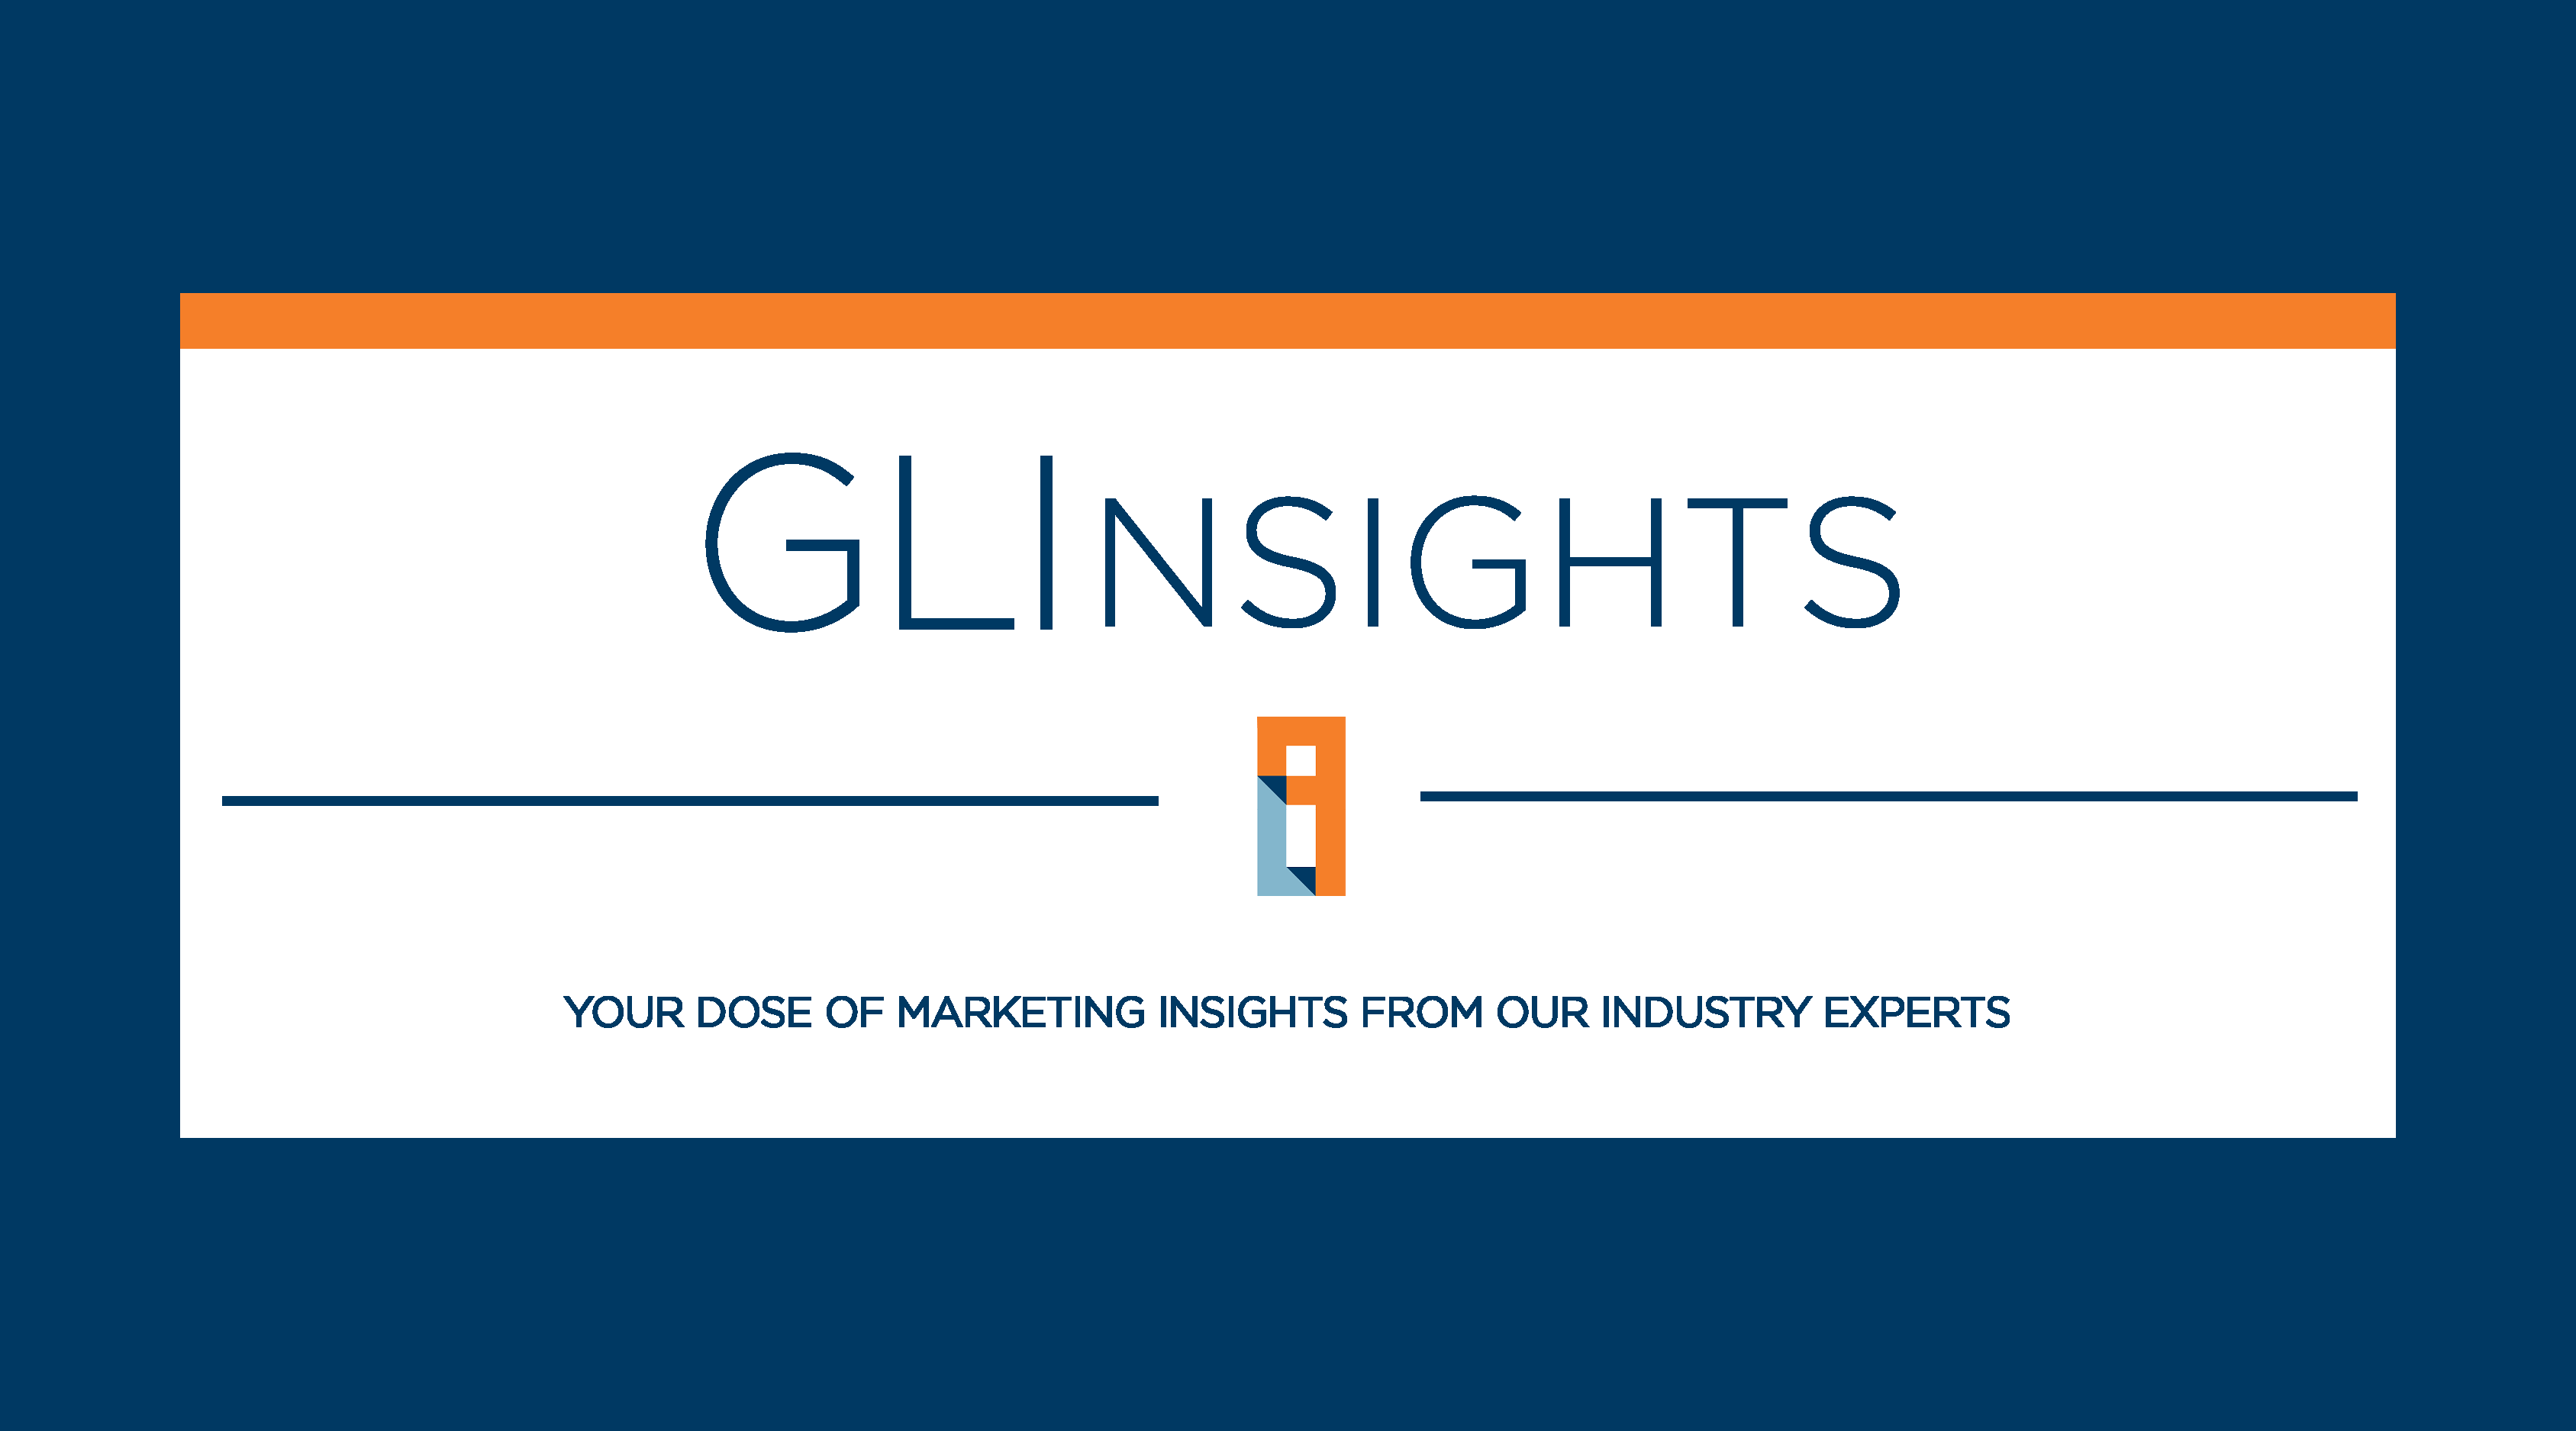 GLInsights: Your dose of marketing insights from our industry experts